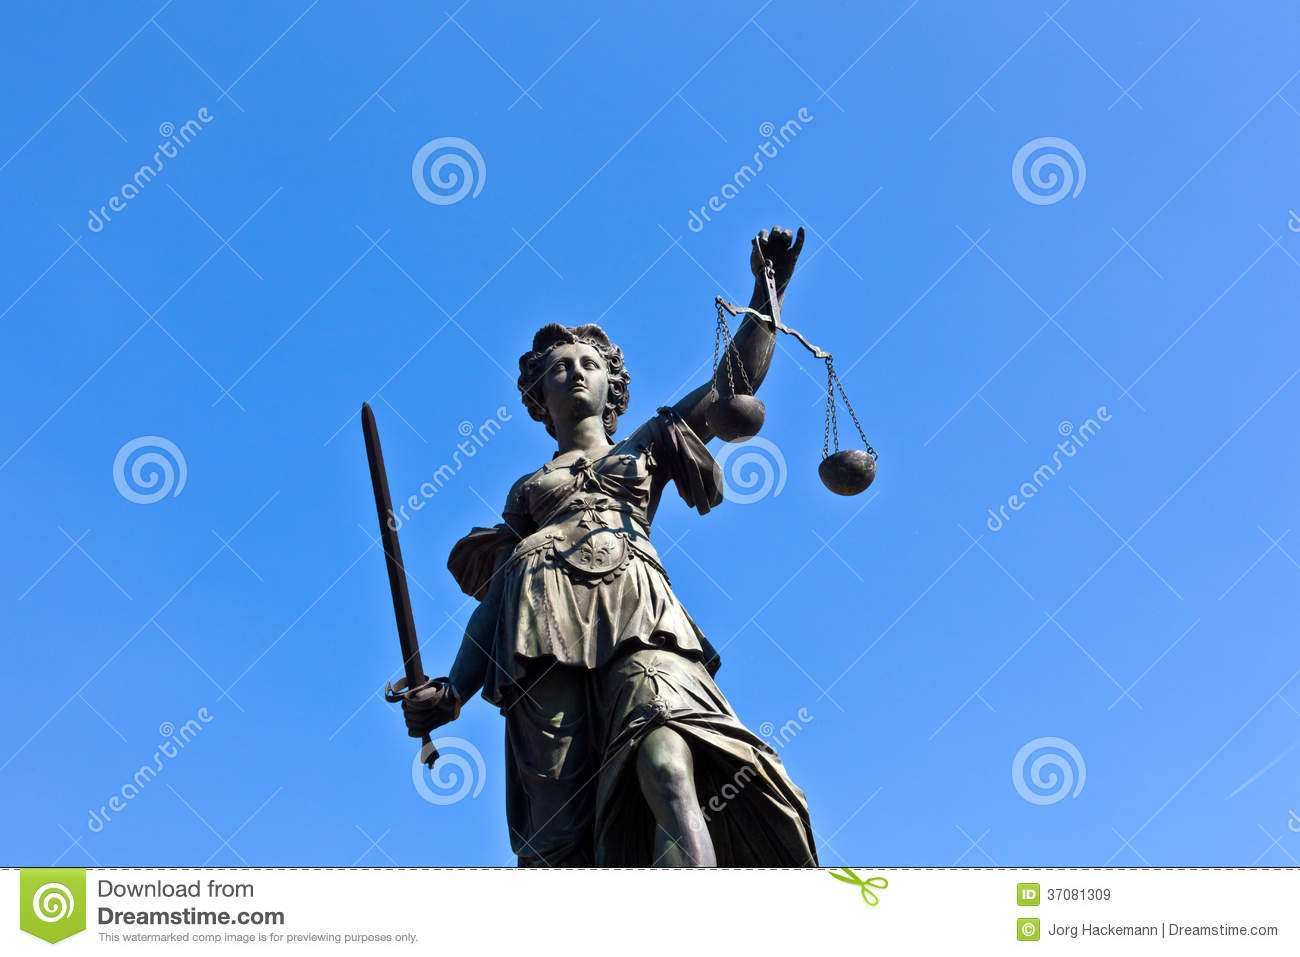 Statue of Lady Justice in front